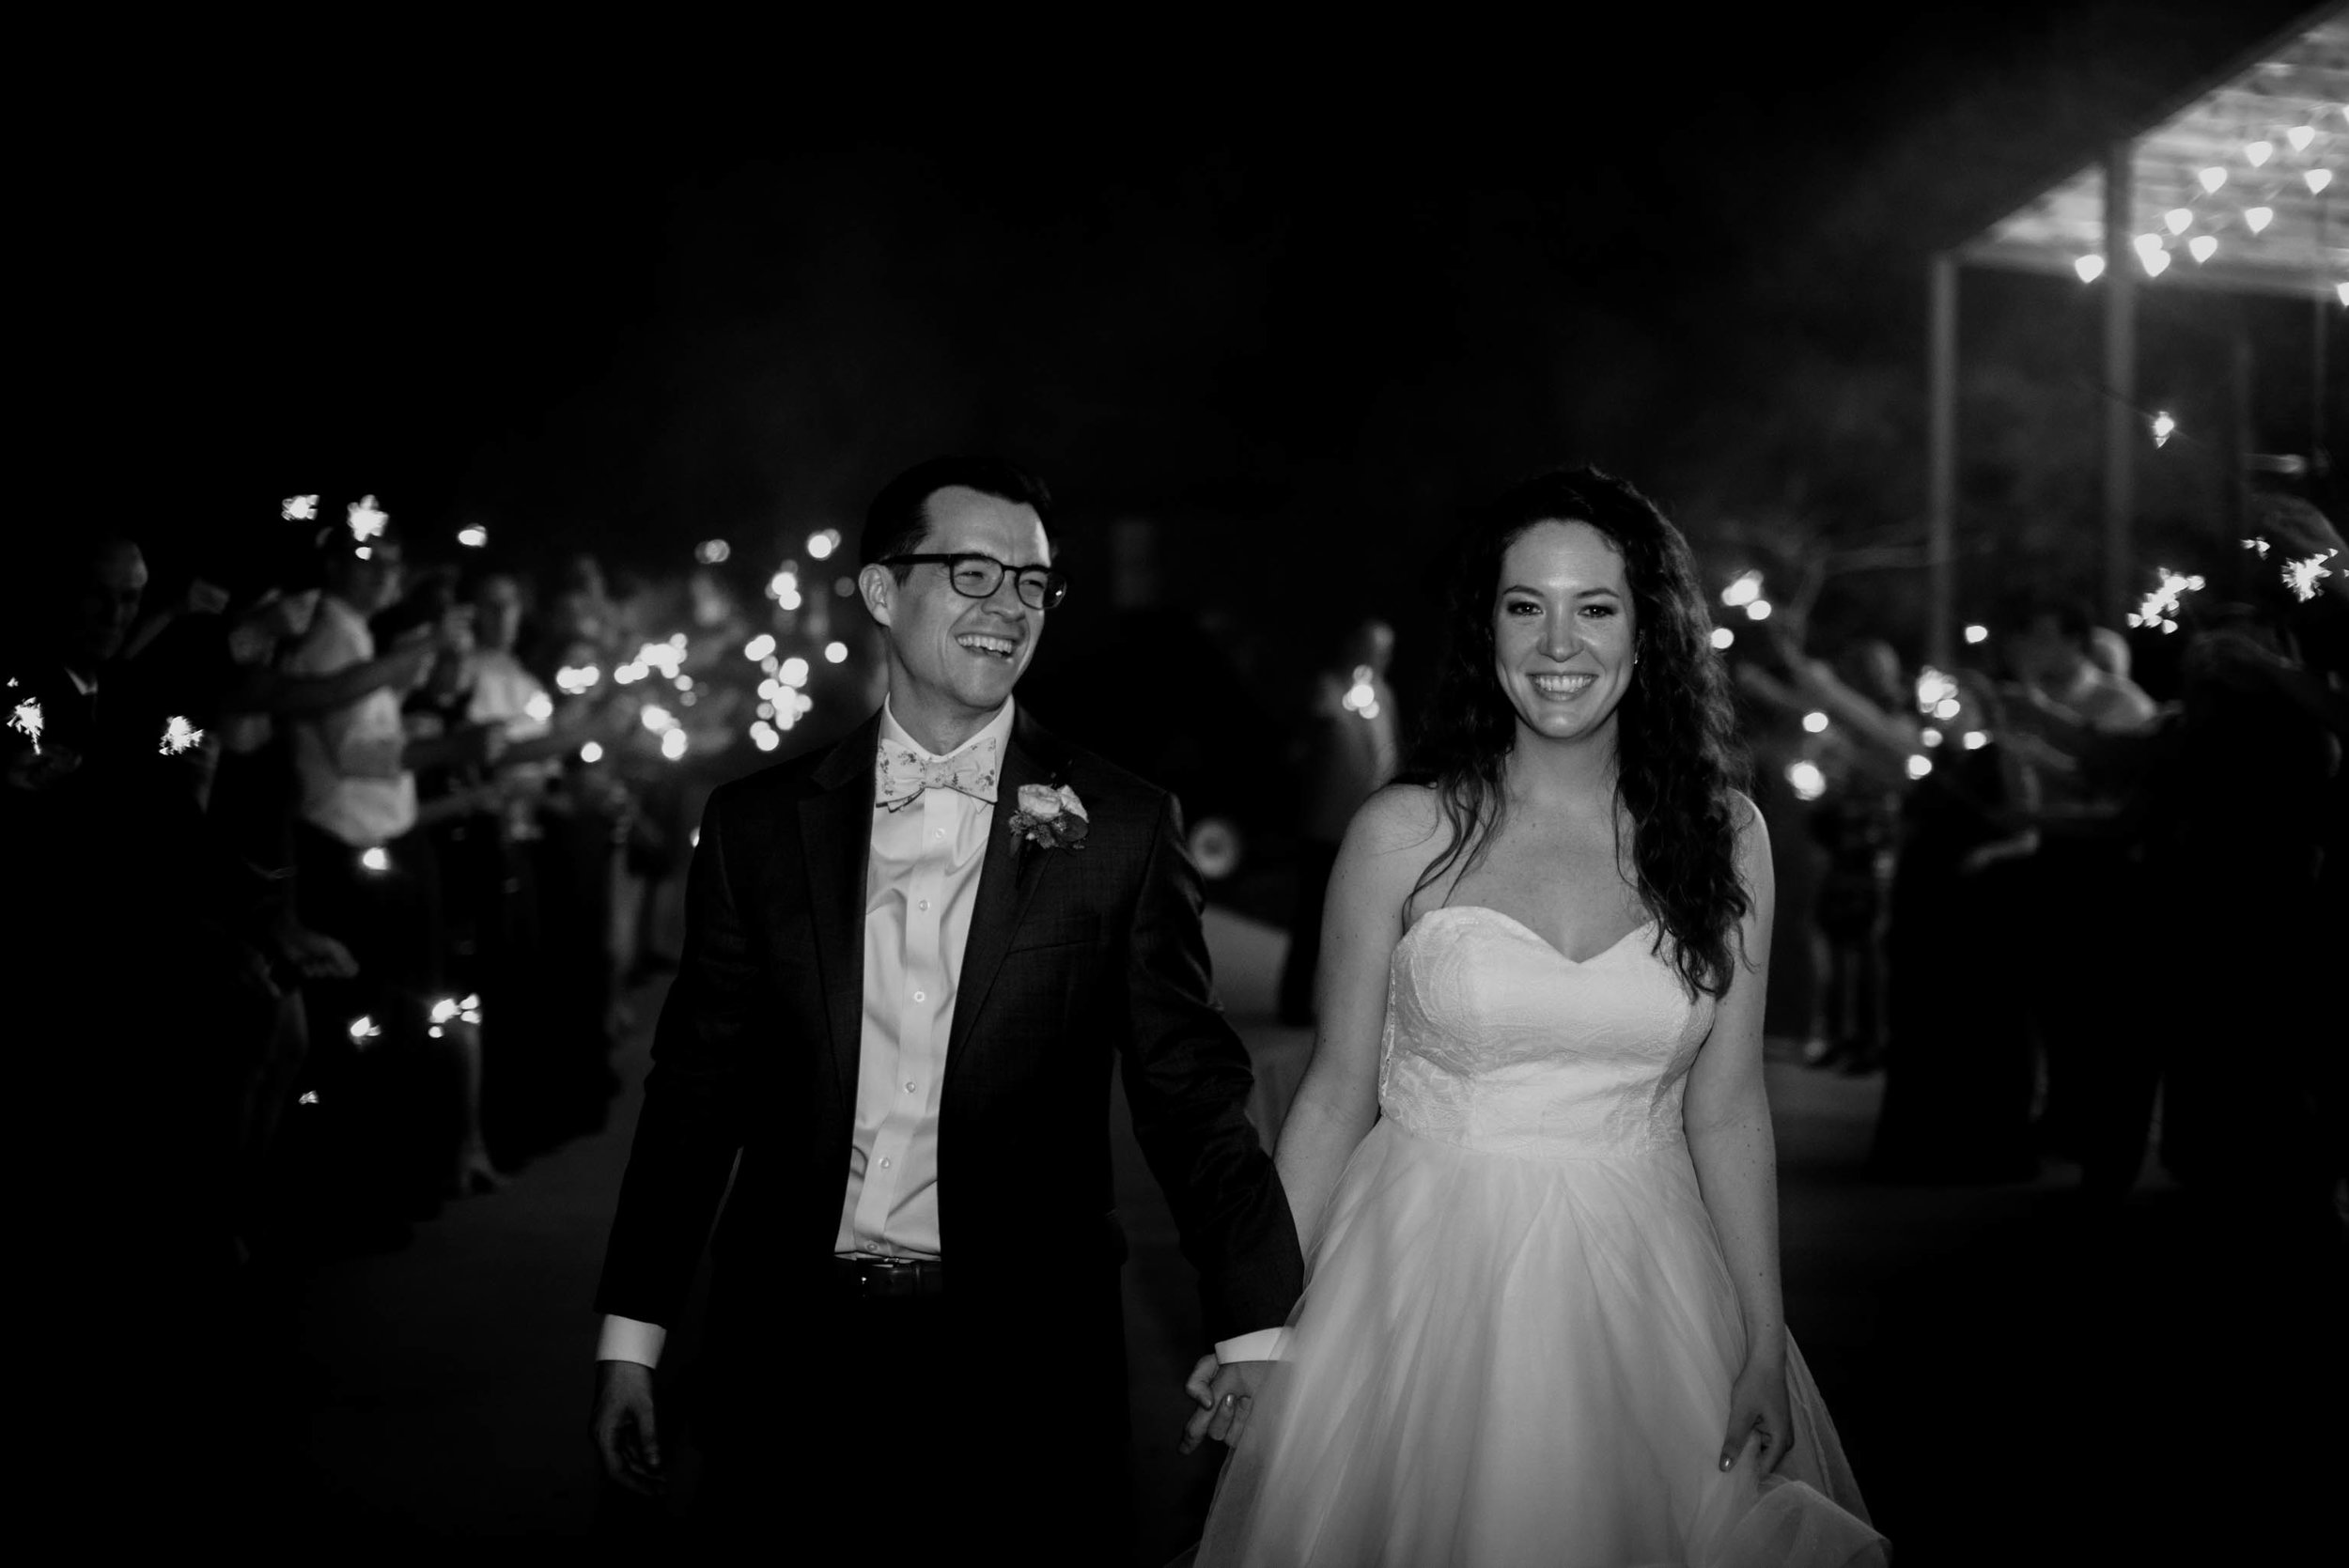 bride and groom smiling wide as they exit their wedding night